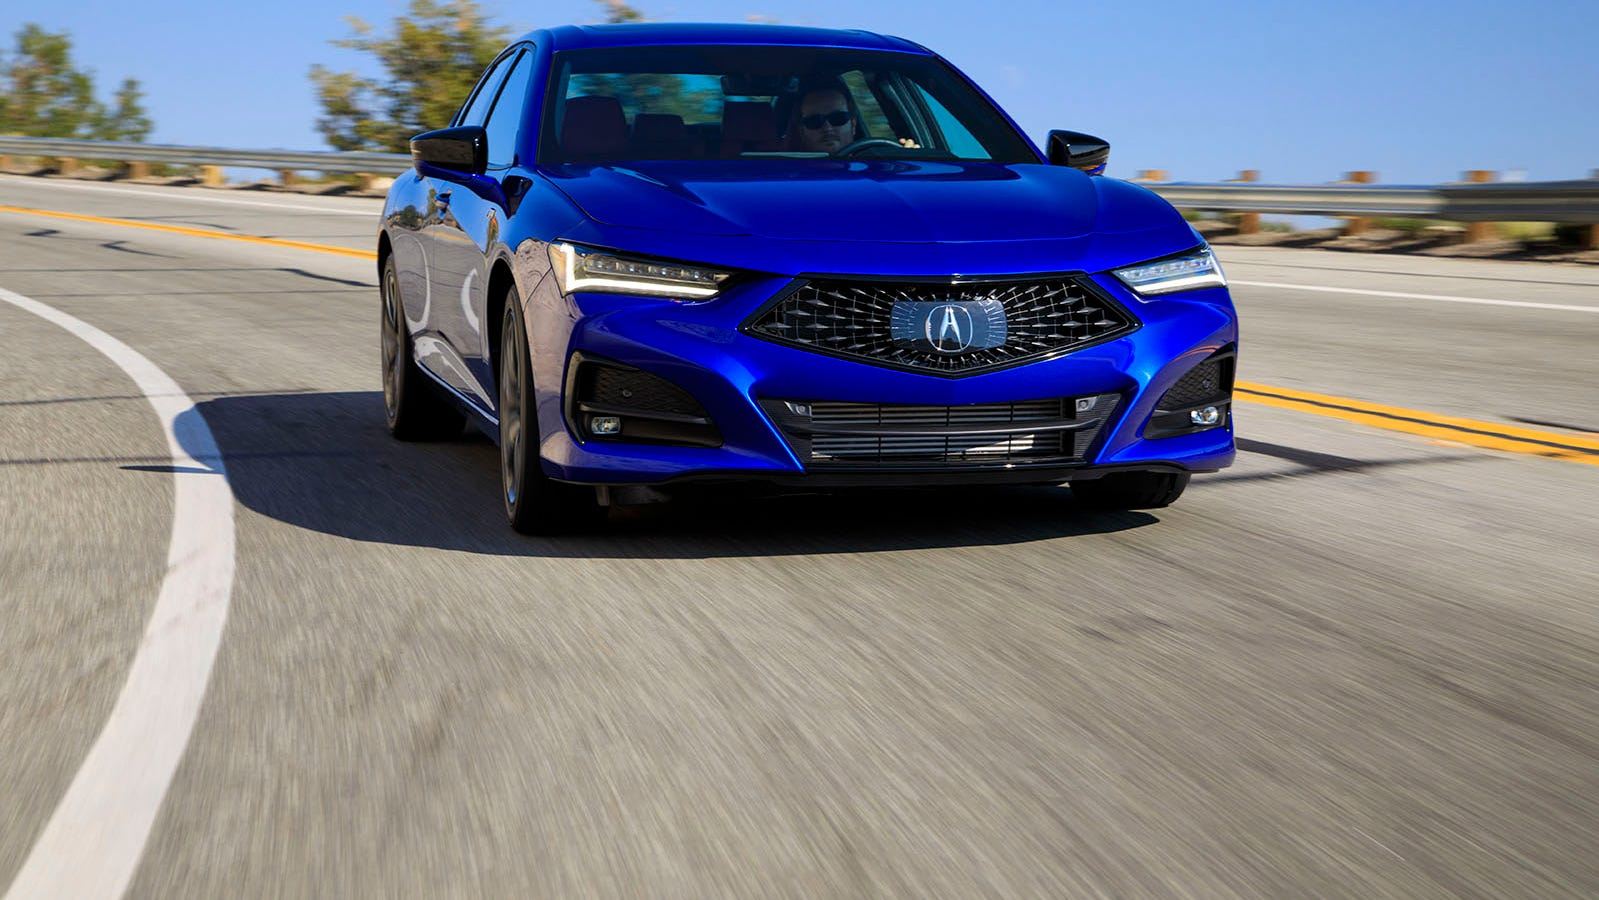 review: 2021 acura tlx a-spec